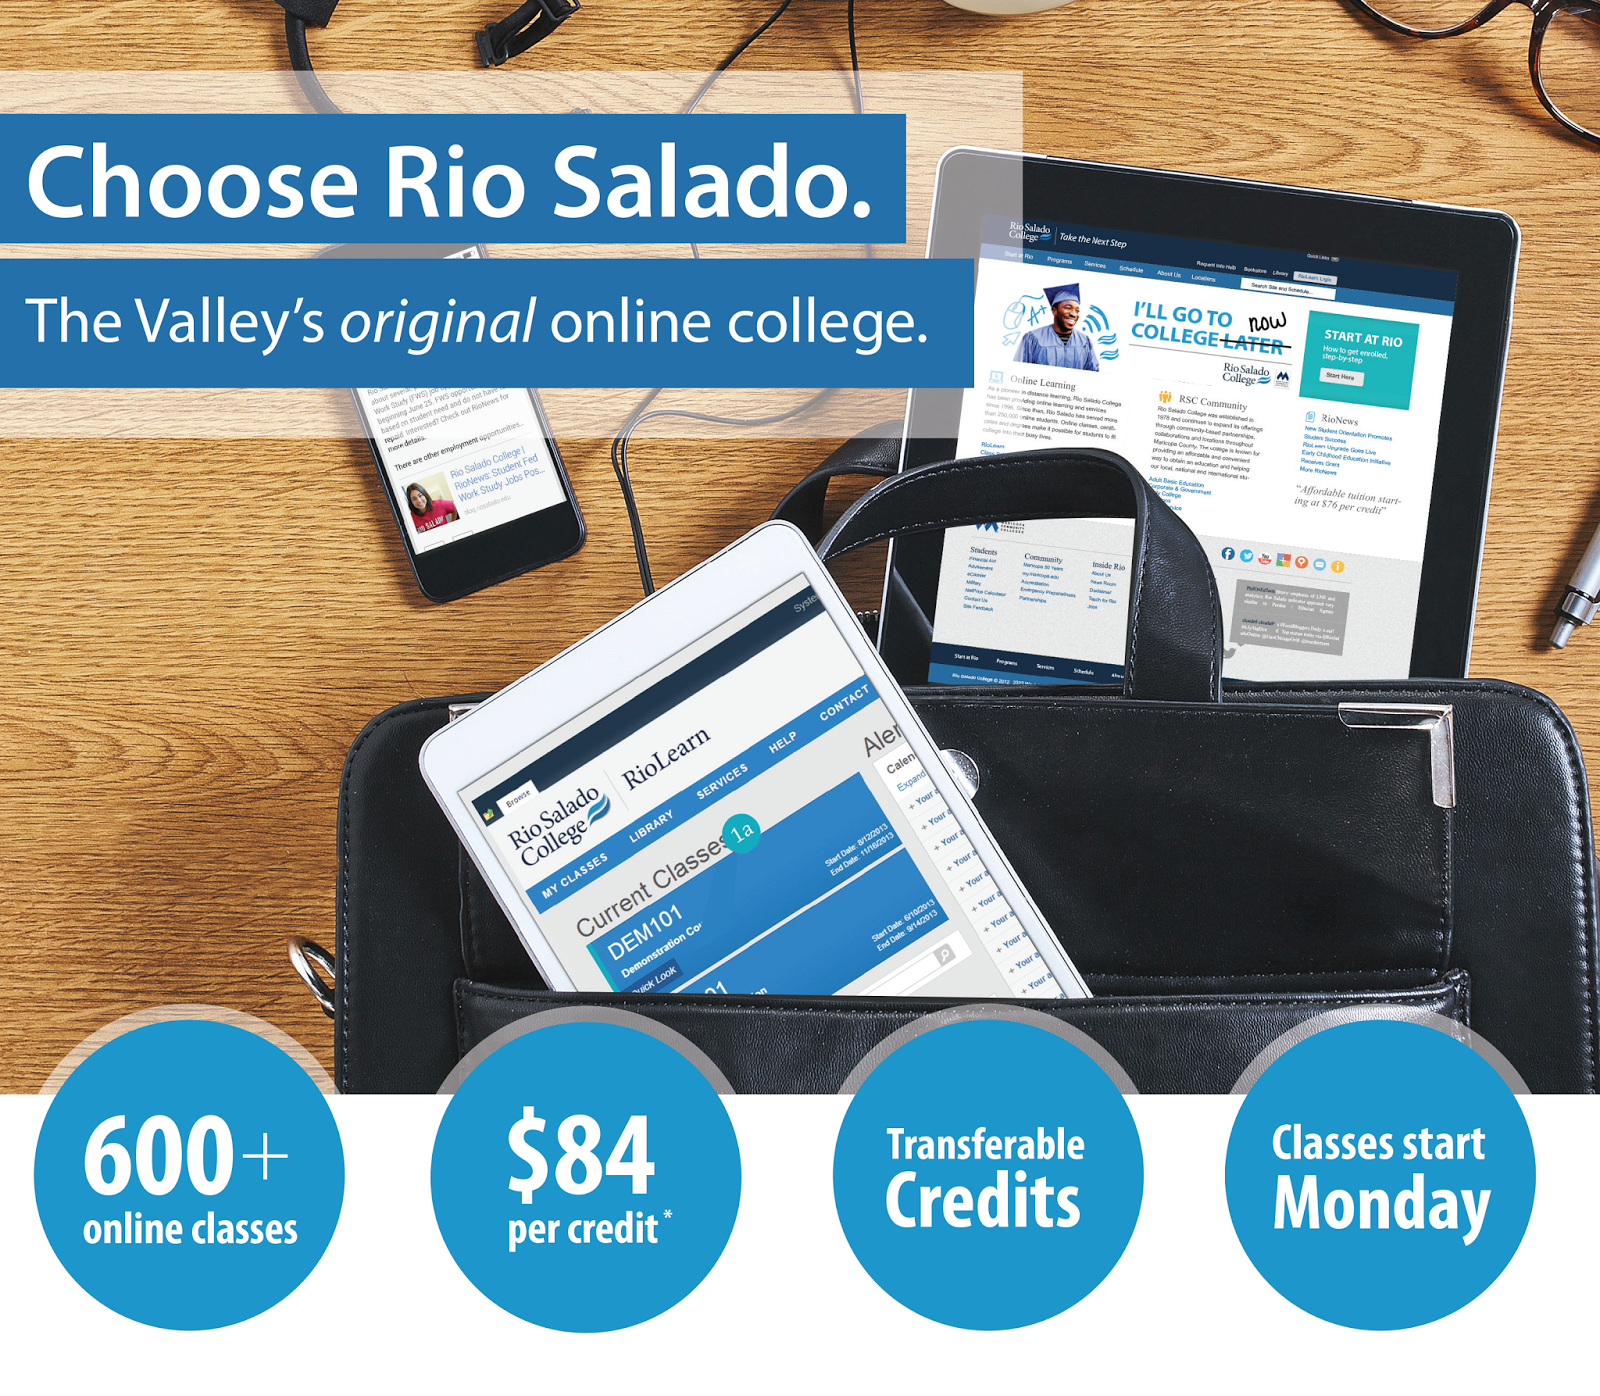 Image of online learning tools.  Text: Choose Rio Salado.  The Valley's original online college.  600+ online classes.  $84 per credit.  Transferable Credits.  Classes start Monday.